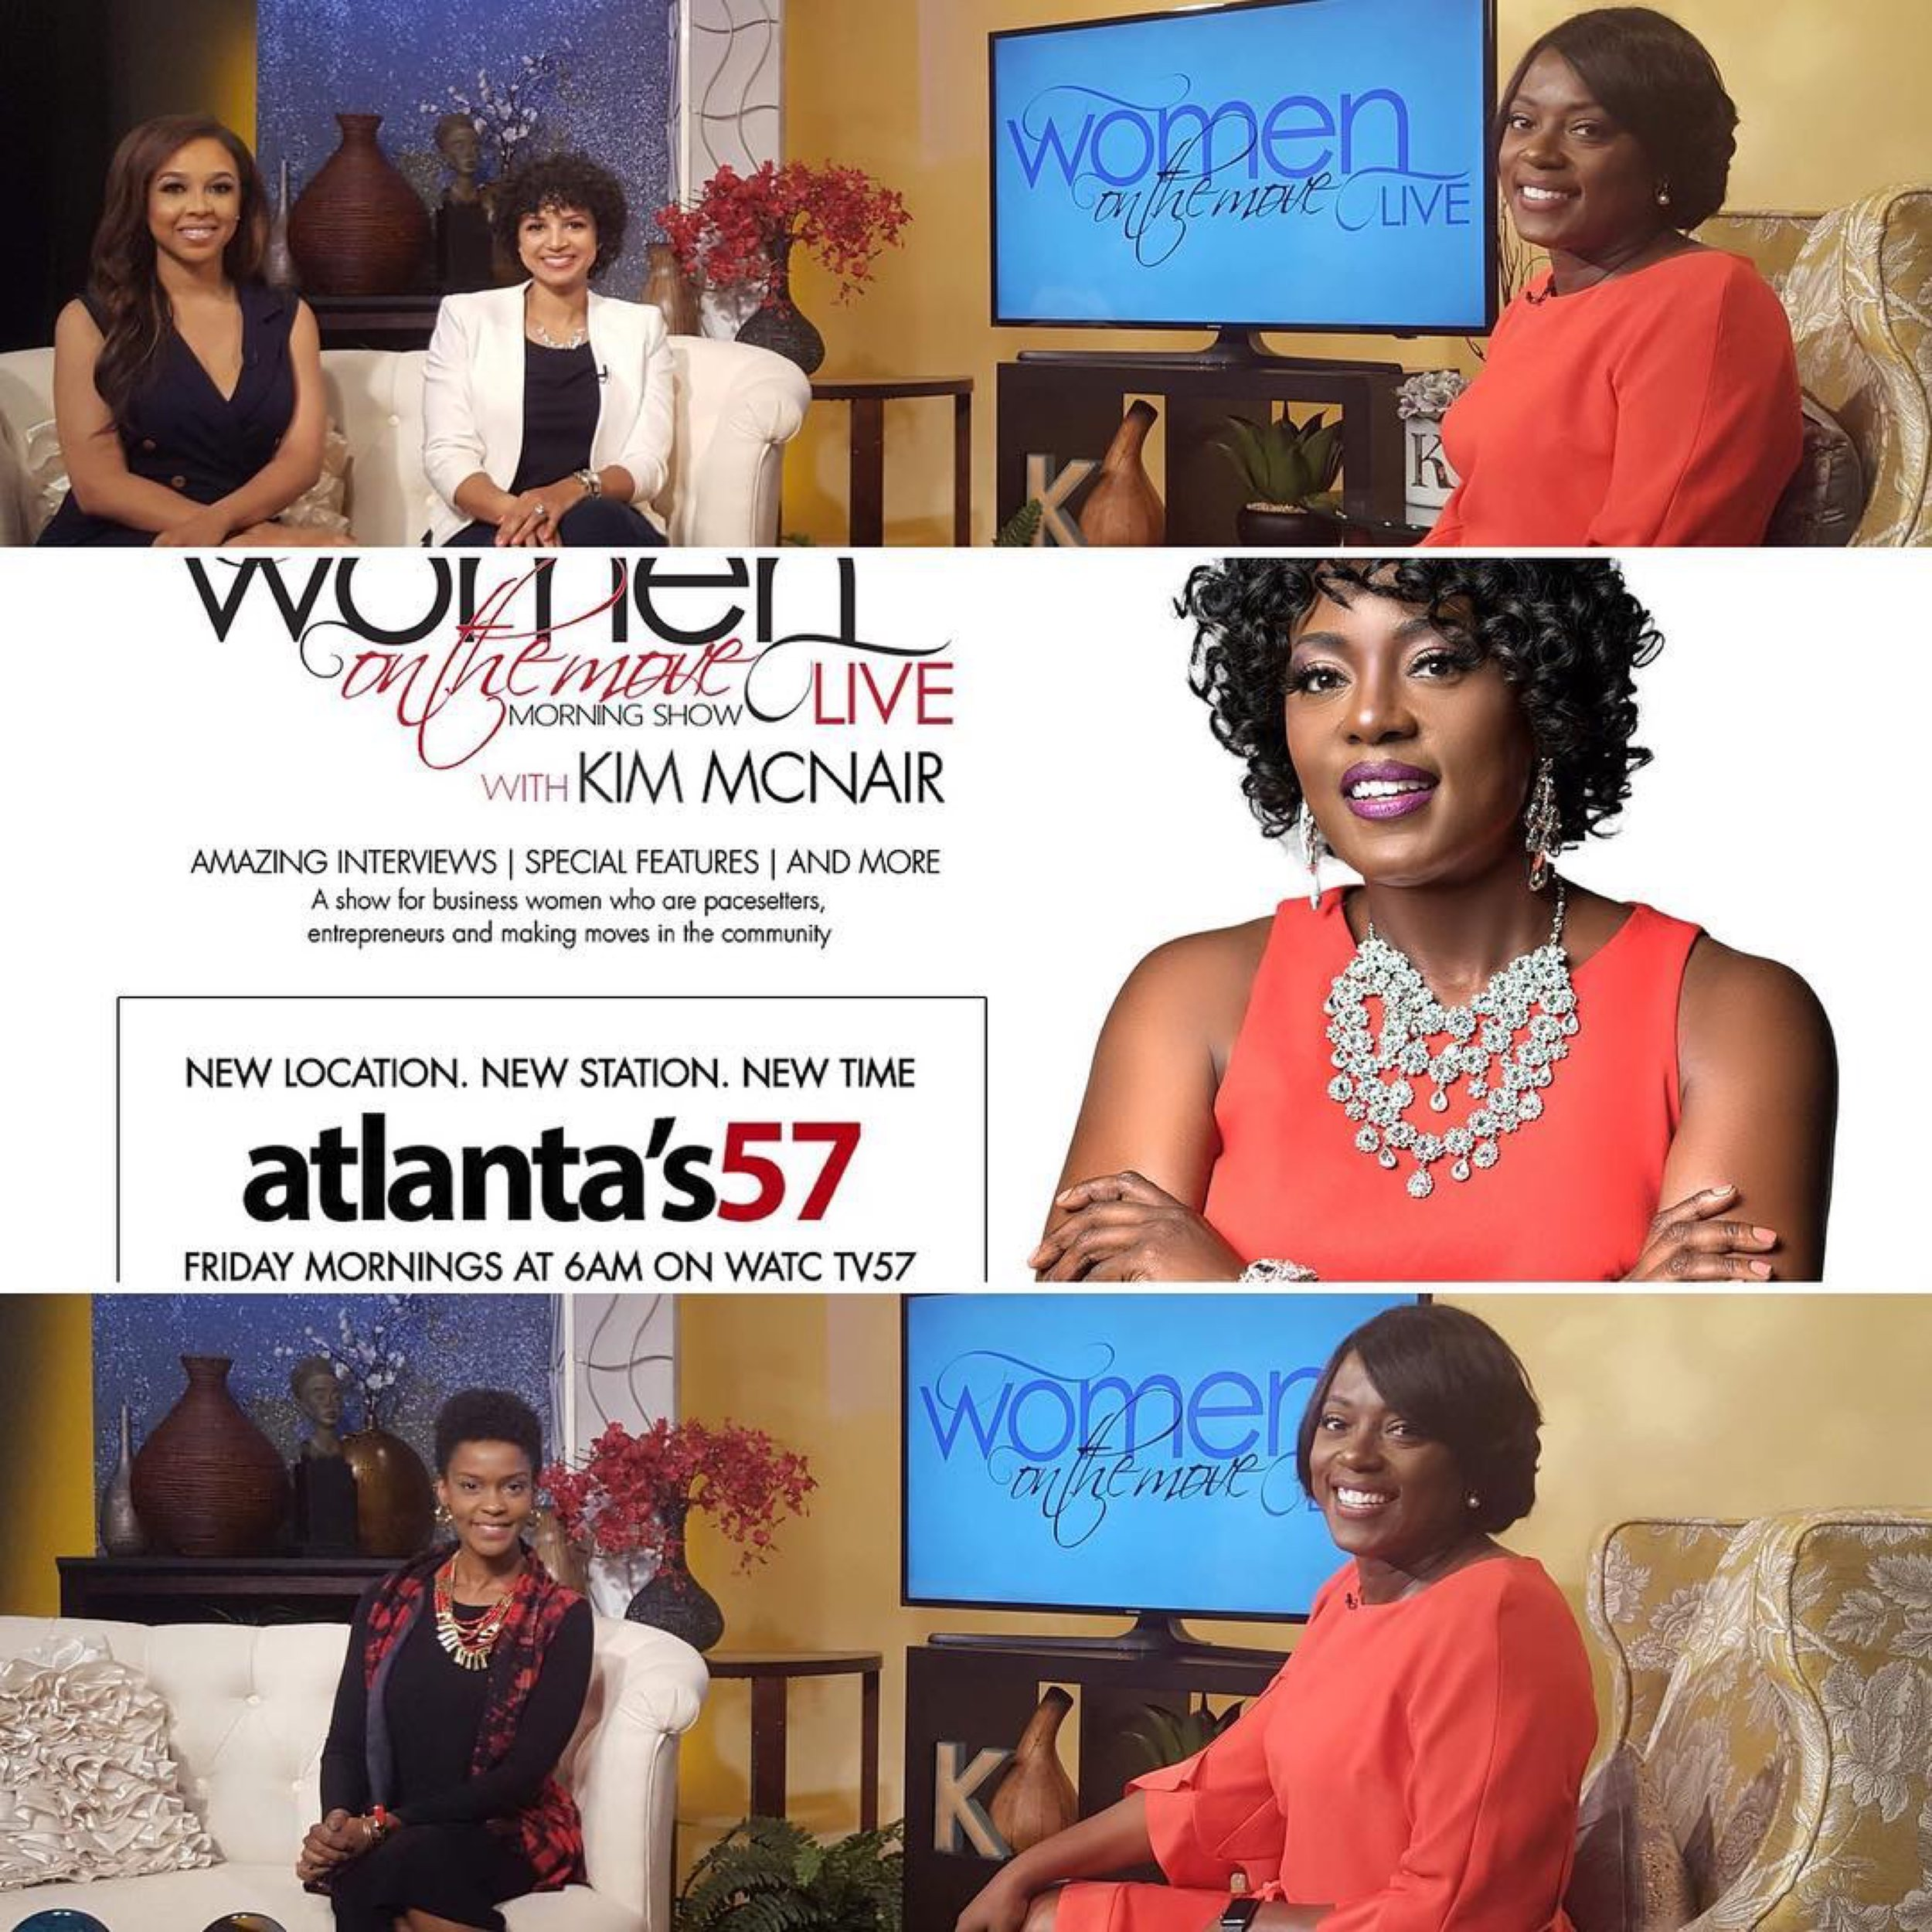 Women on the Move TV  (15:16-27:20)